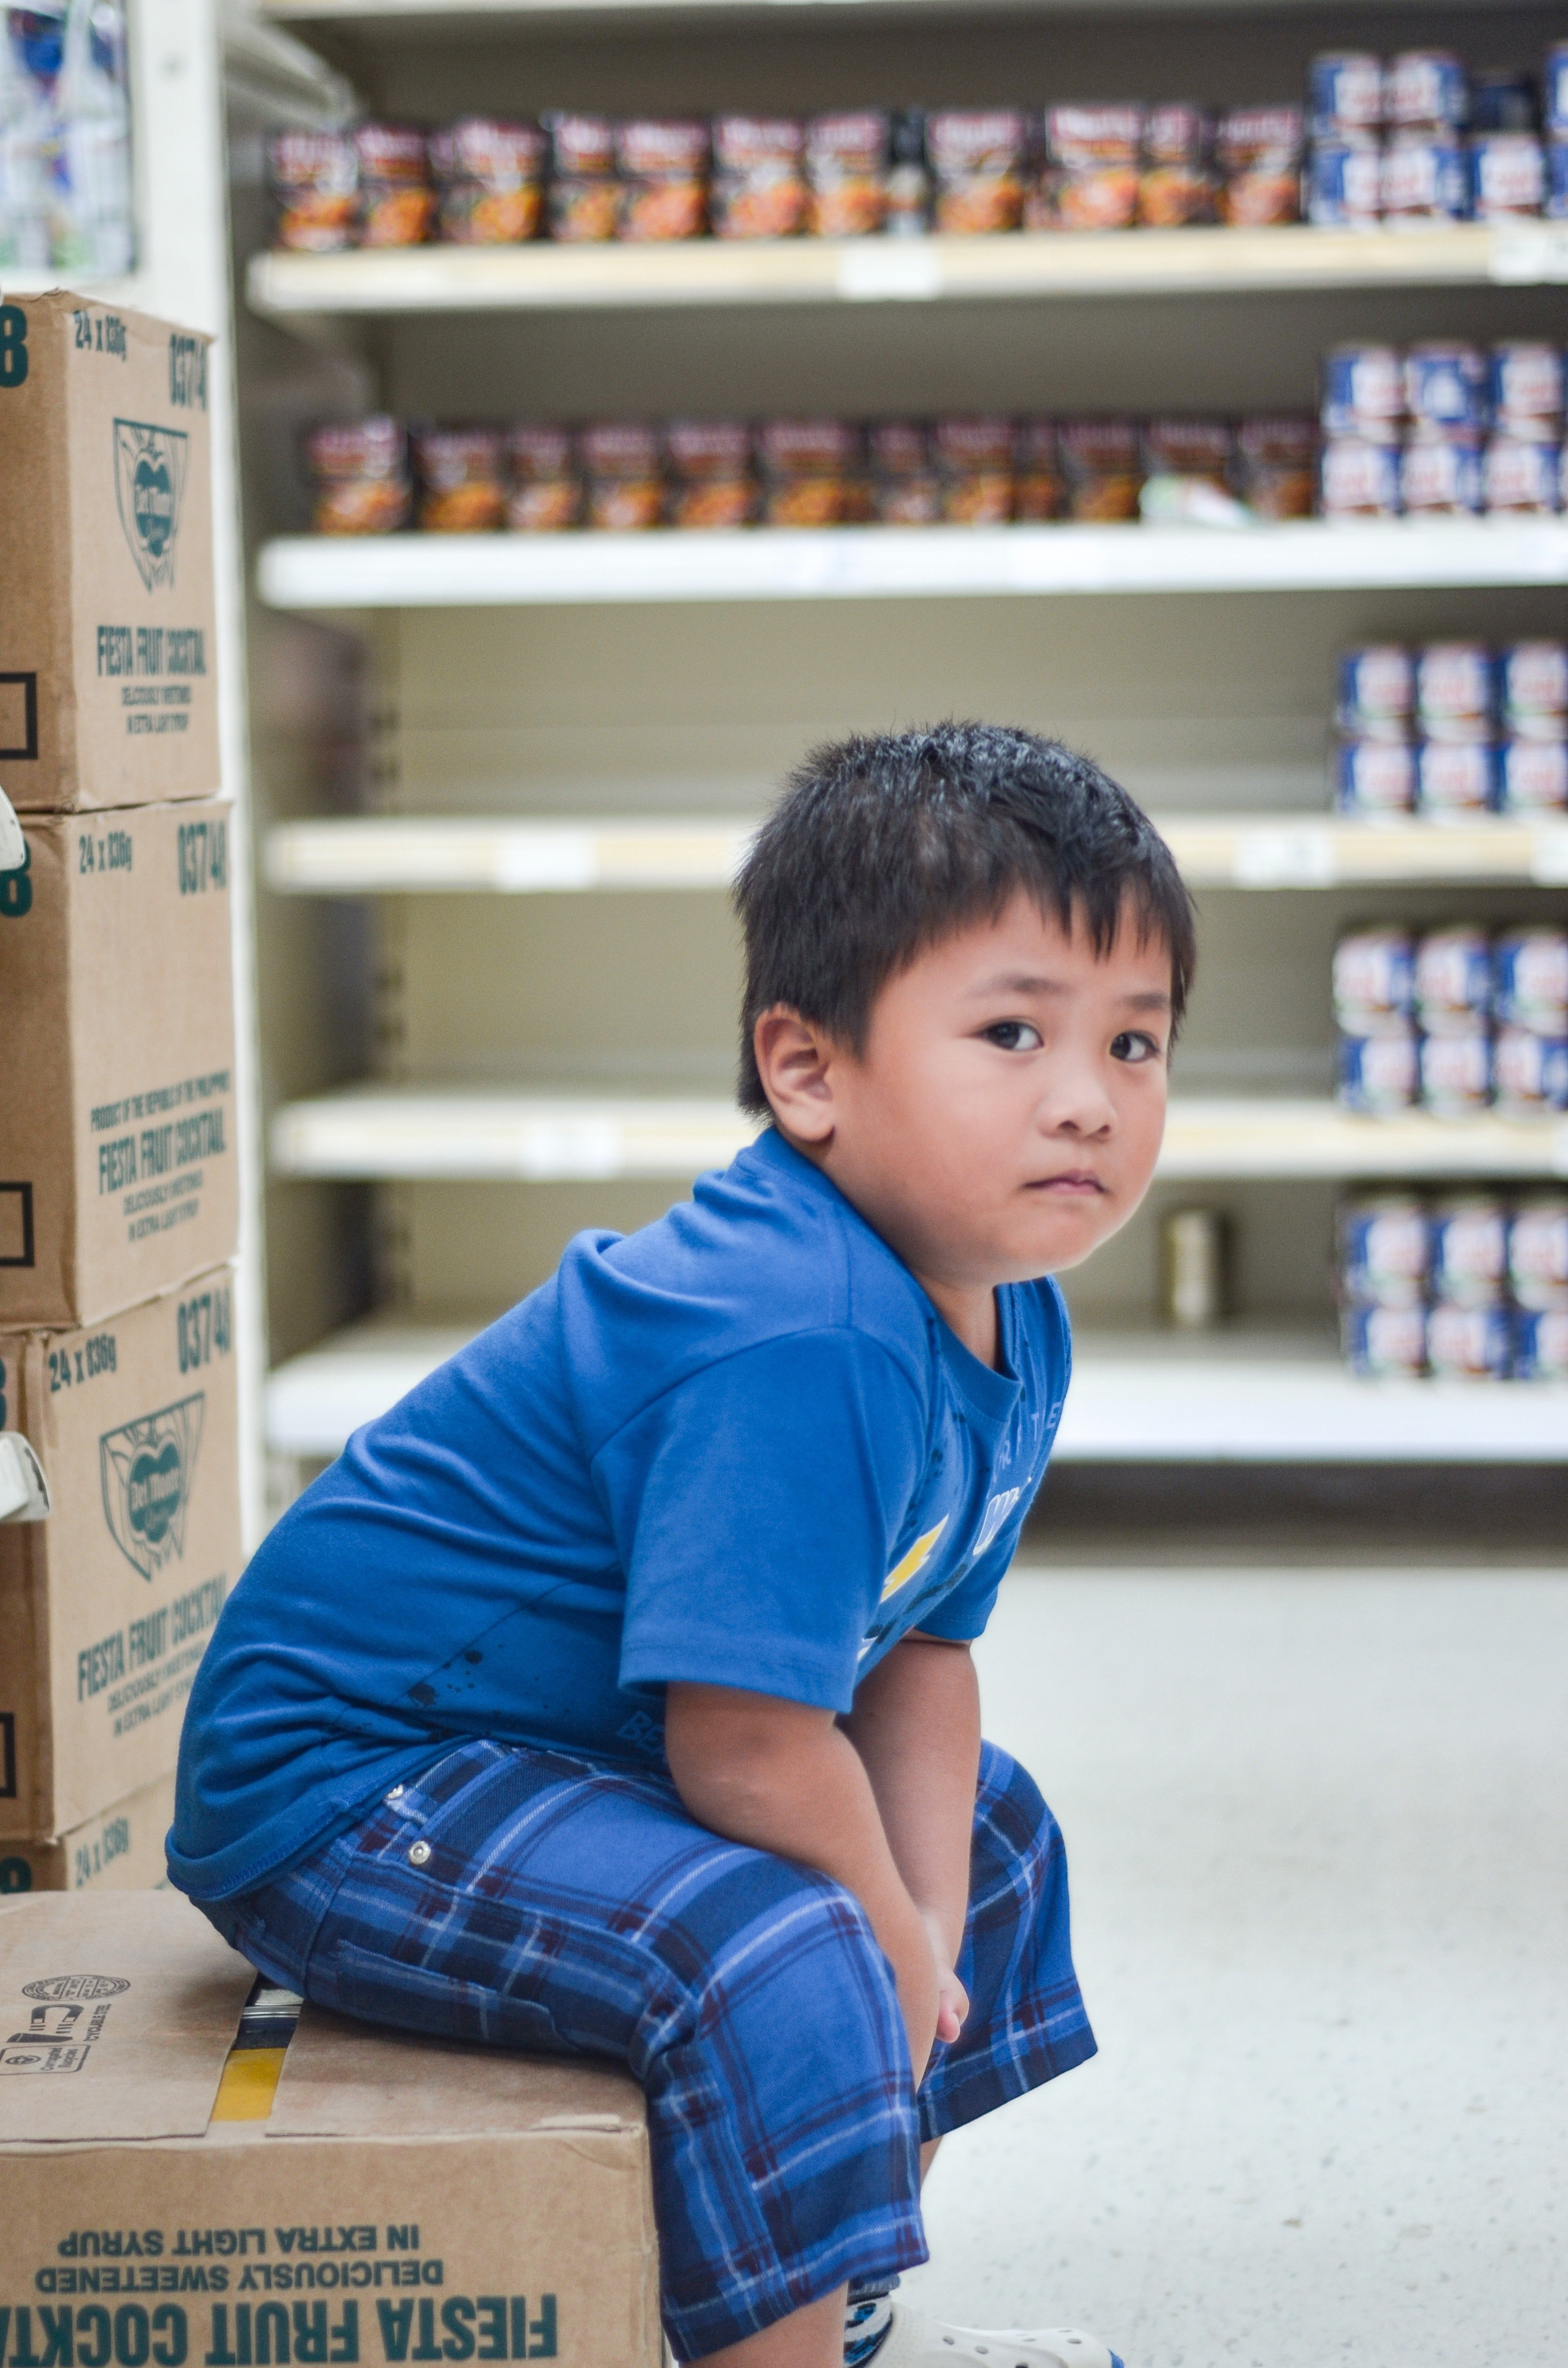 A young boy sitting on a cardboard box in a supermarket   Photo: Pexels